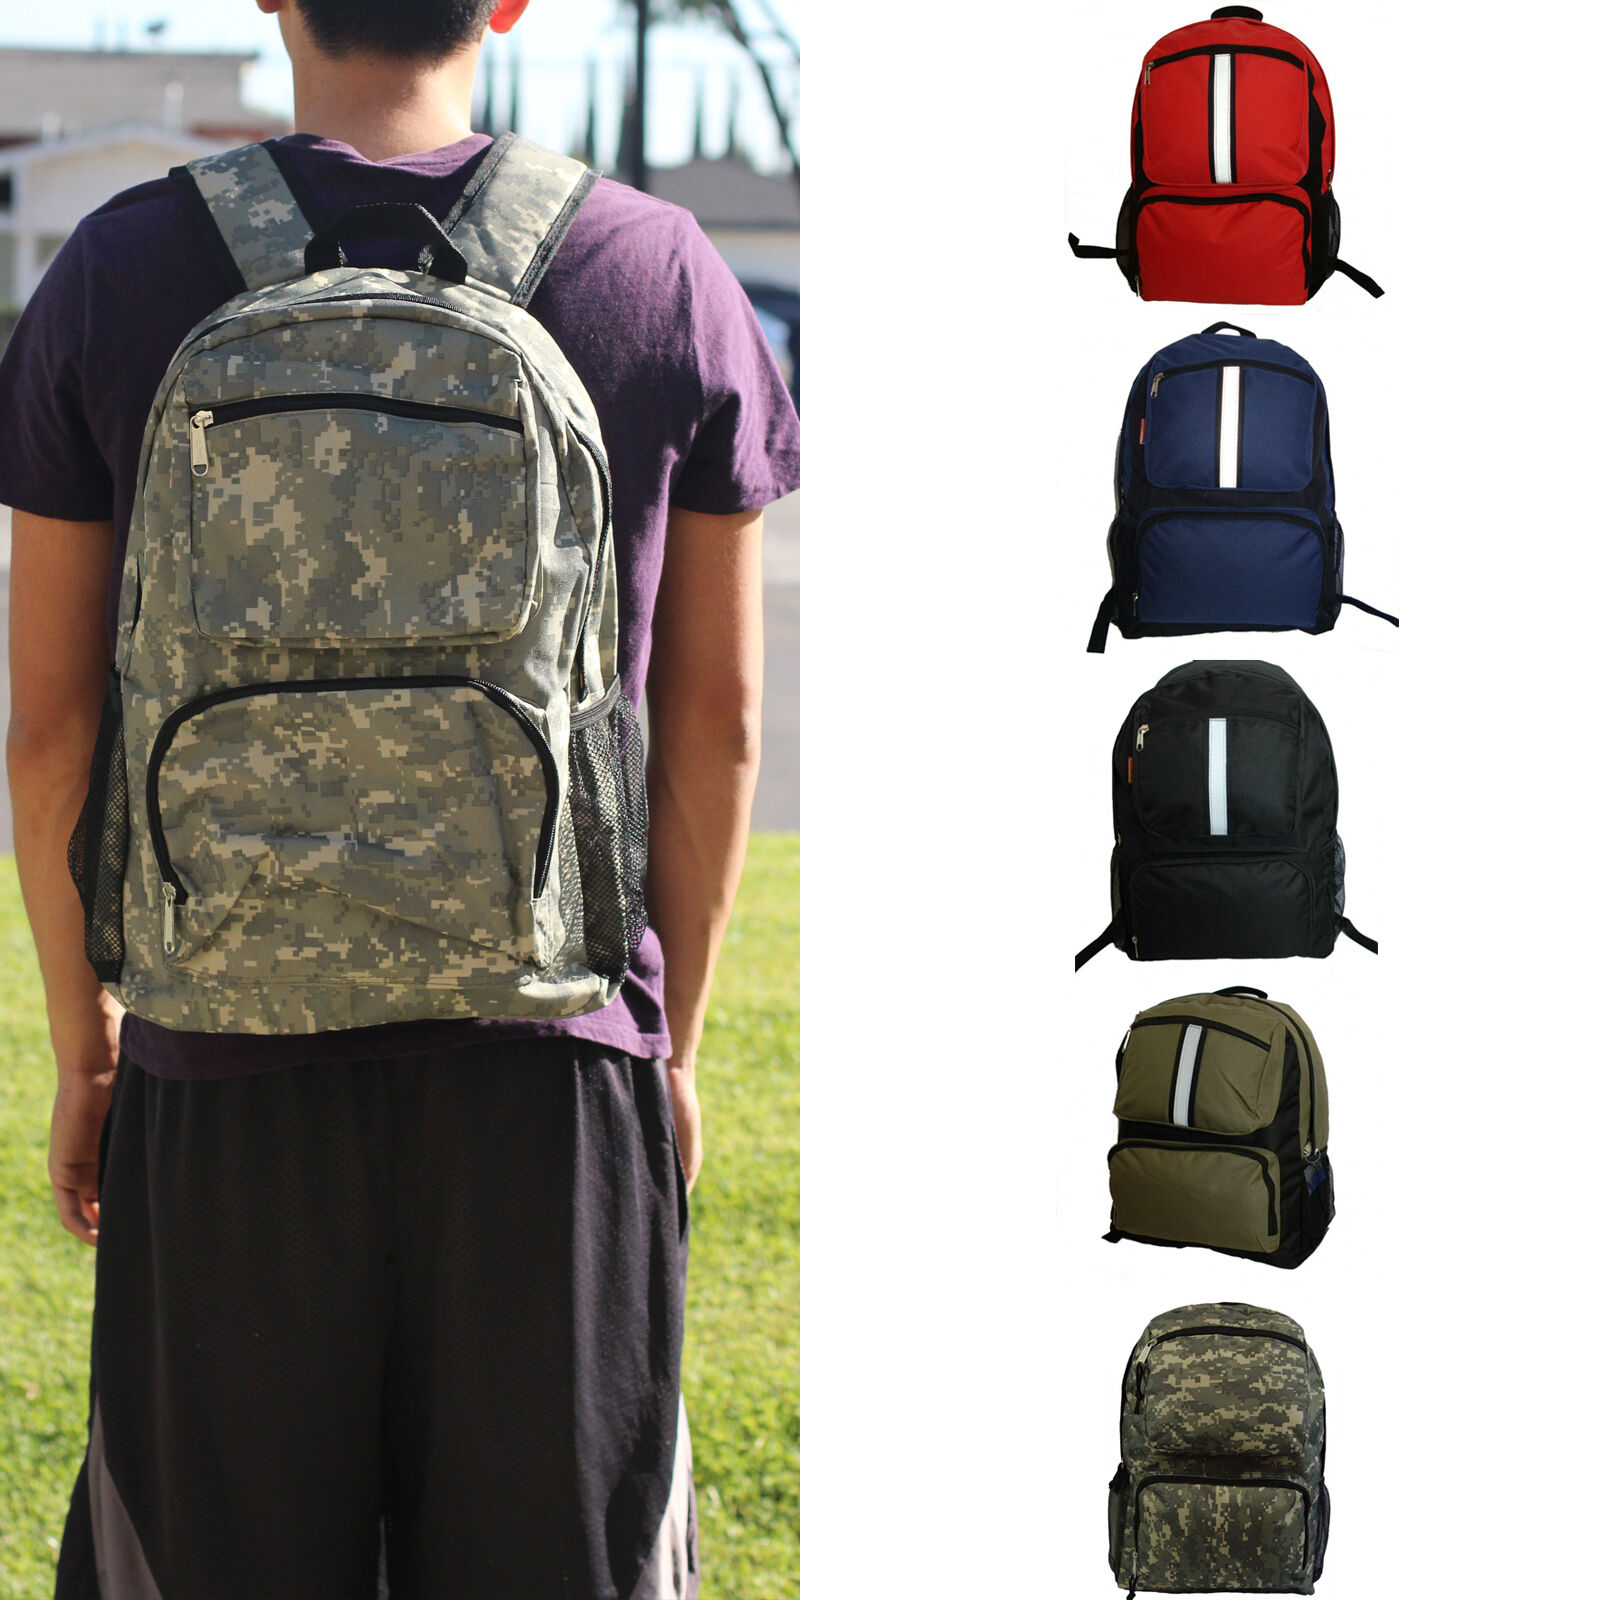 66a5c57dea Details about Kids Teens Backpack Student Book 18